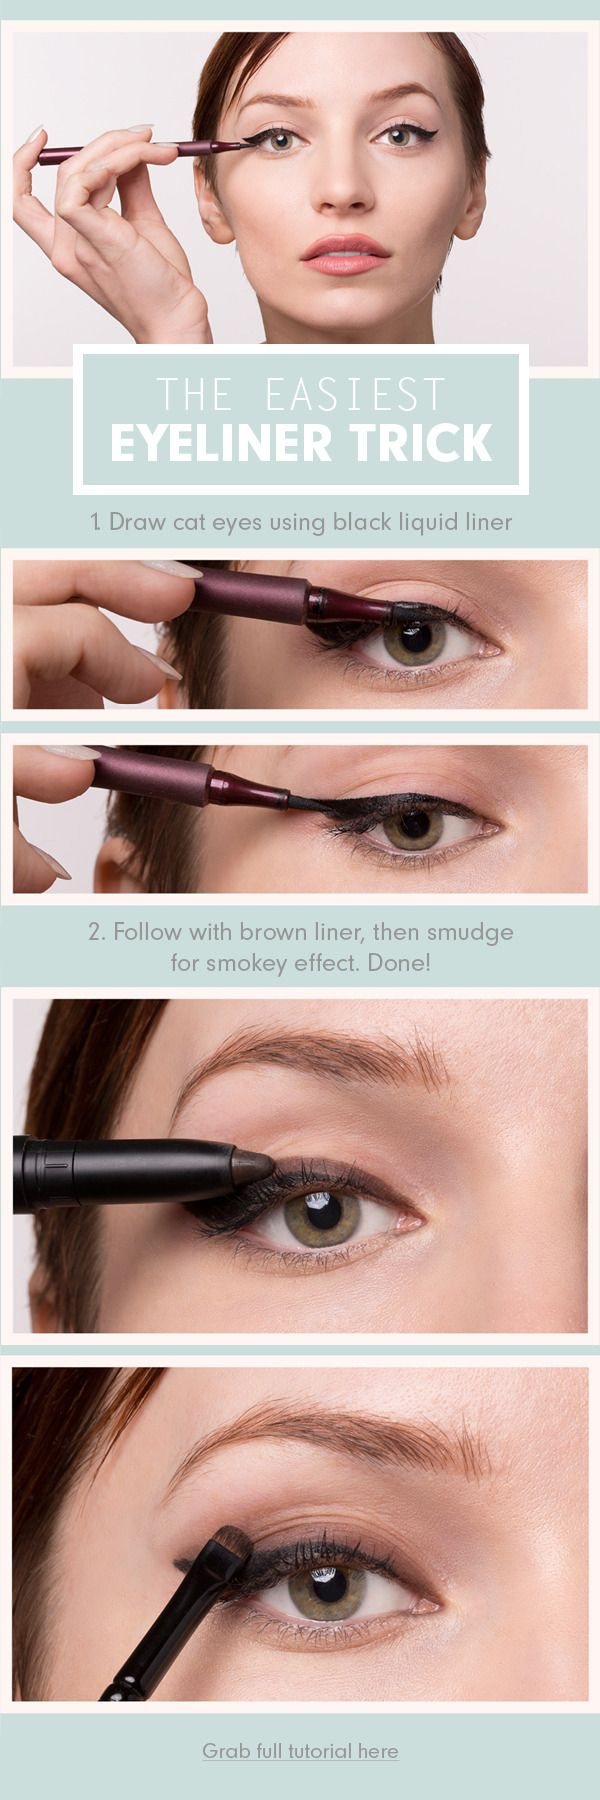 Day-appropriate cat eye: Start with regular winged black liner, then add a layer of brown eyeliner along the top. Smoke out with fingers or brush, and you're done!